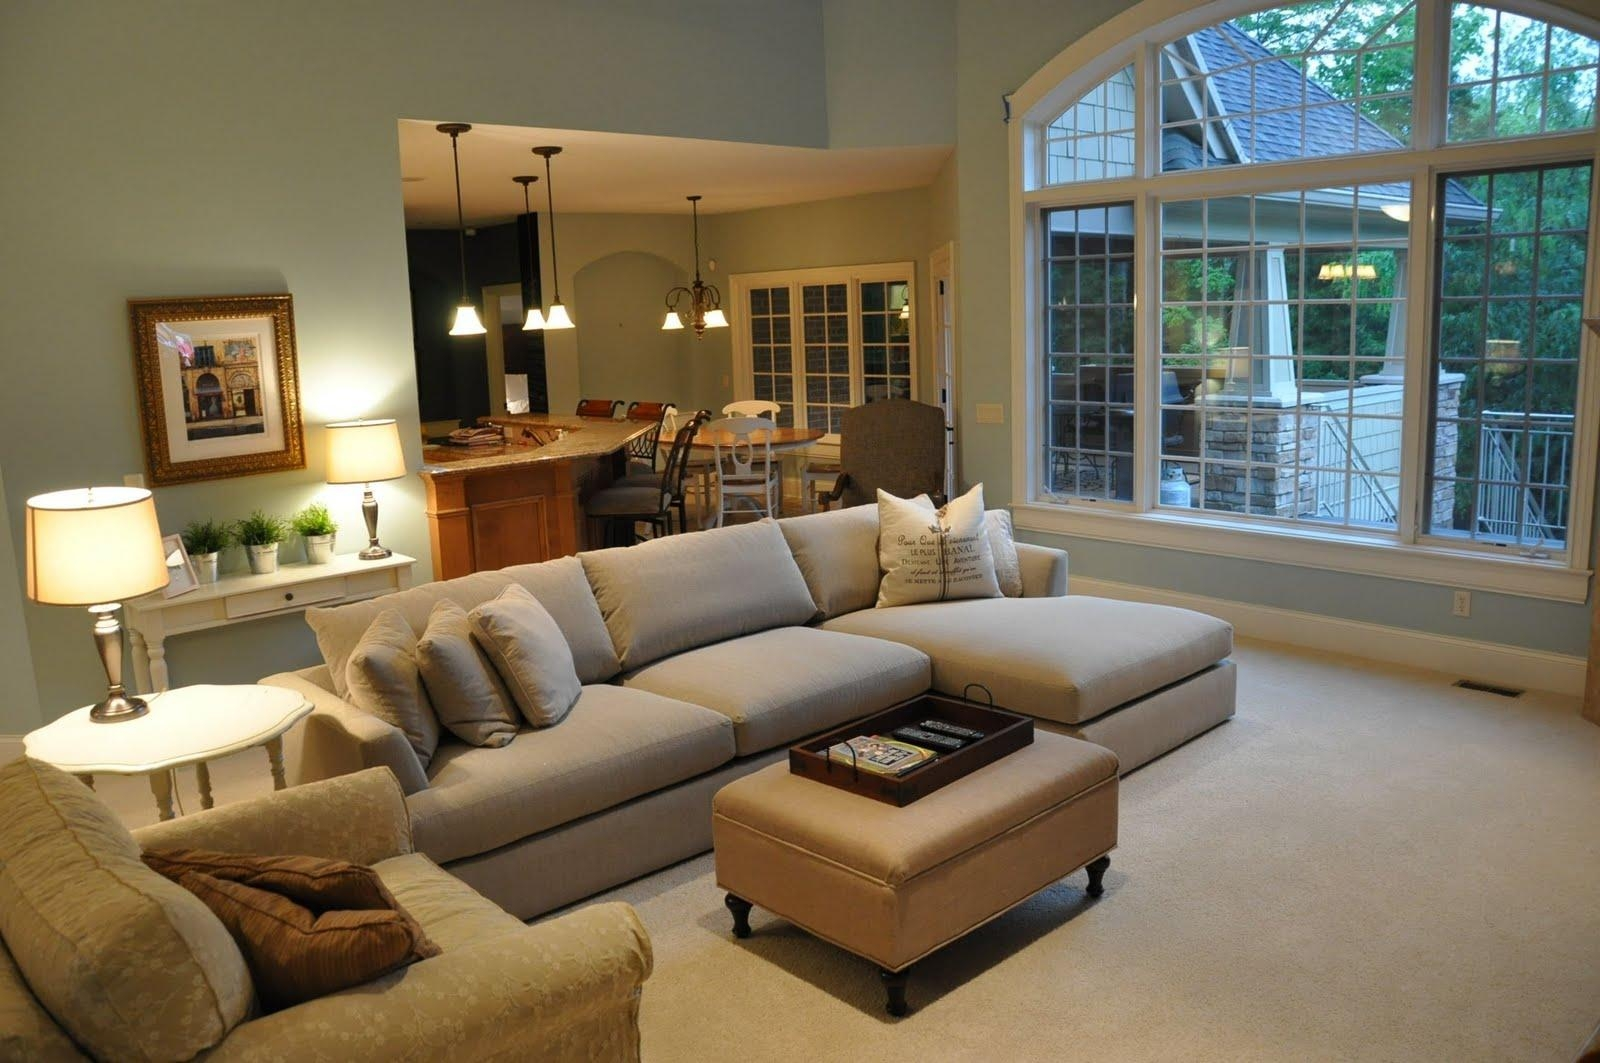 The Sectional Has Landed – Evolution Of Style Intended For Arhaus Emory Sectional (Image 15 of 15)